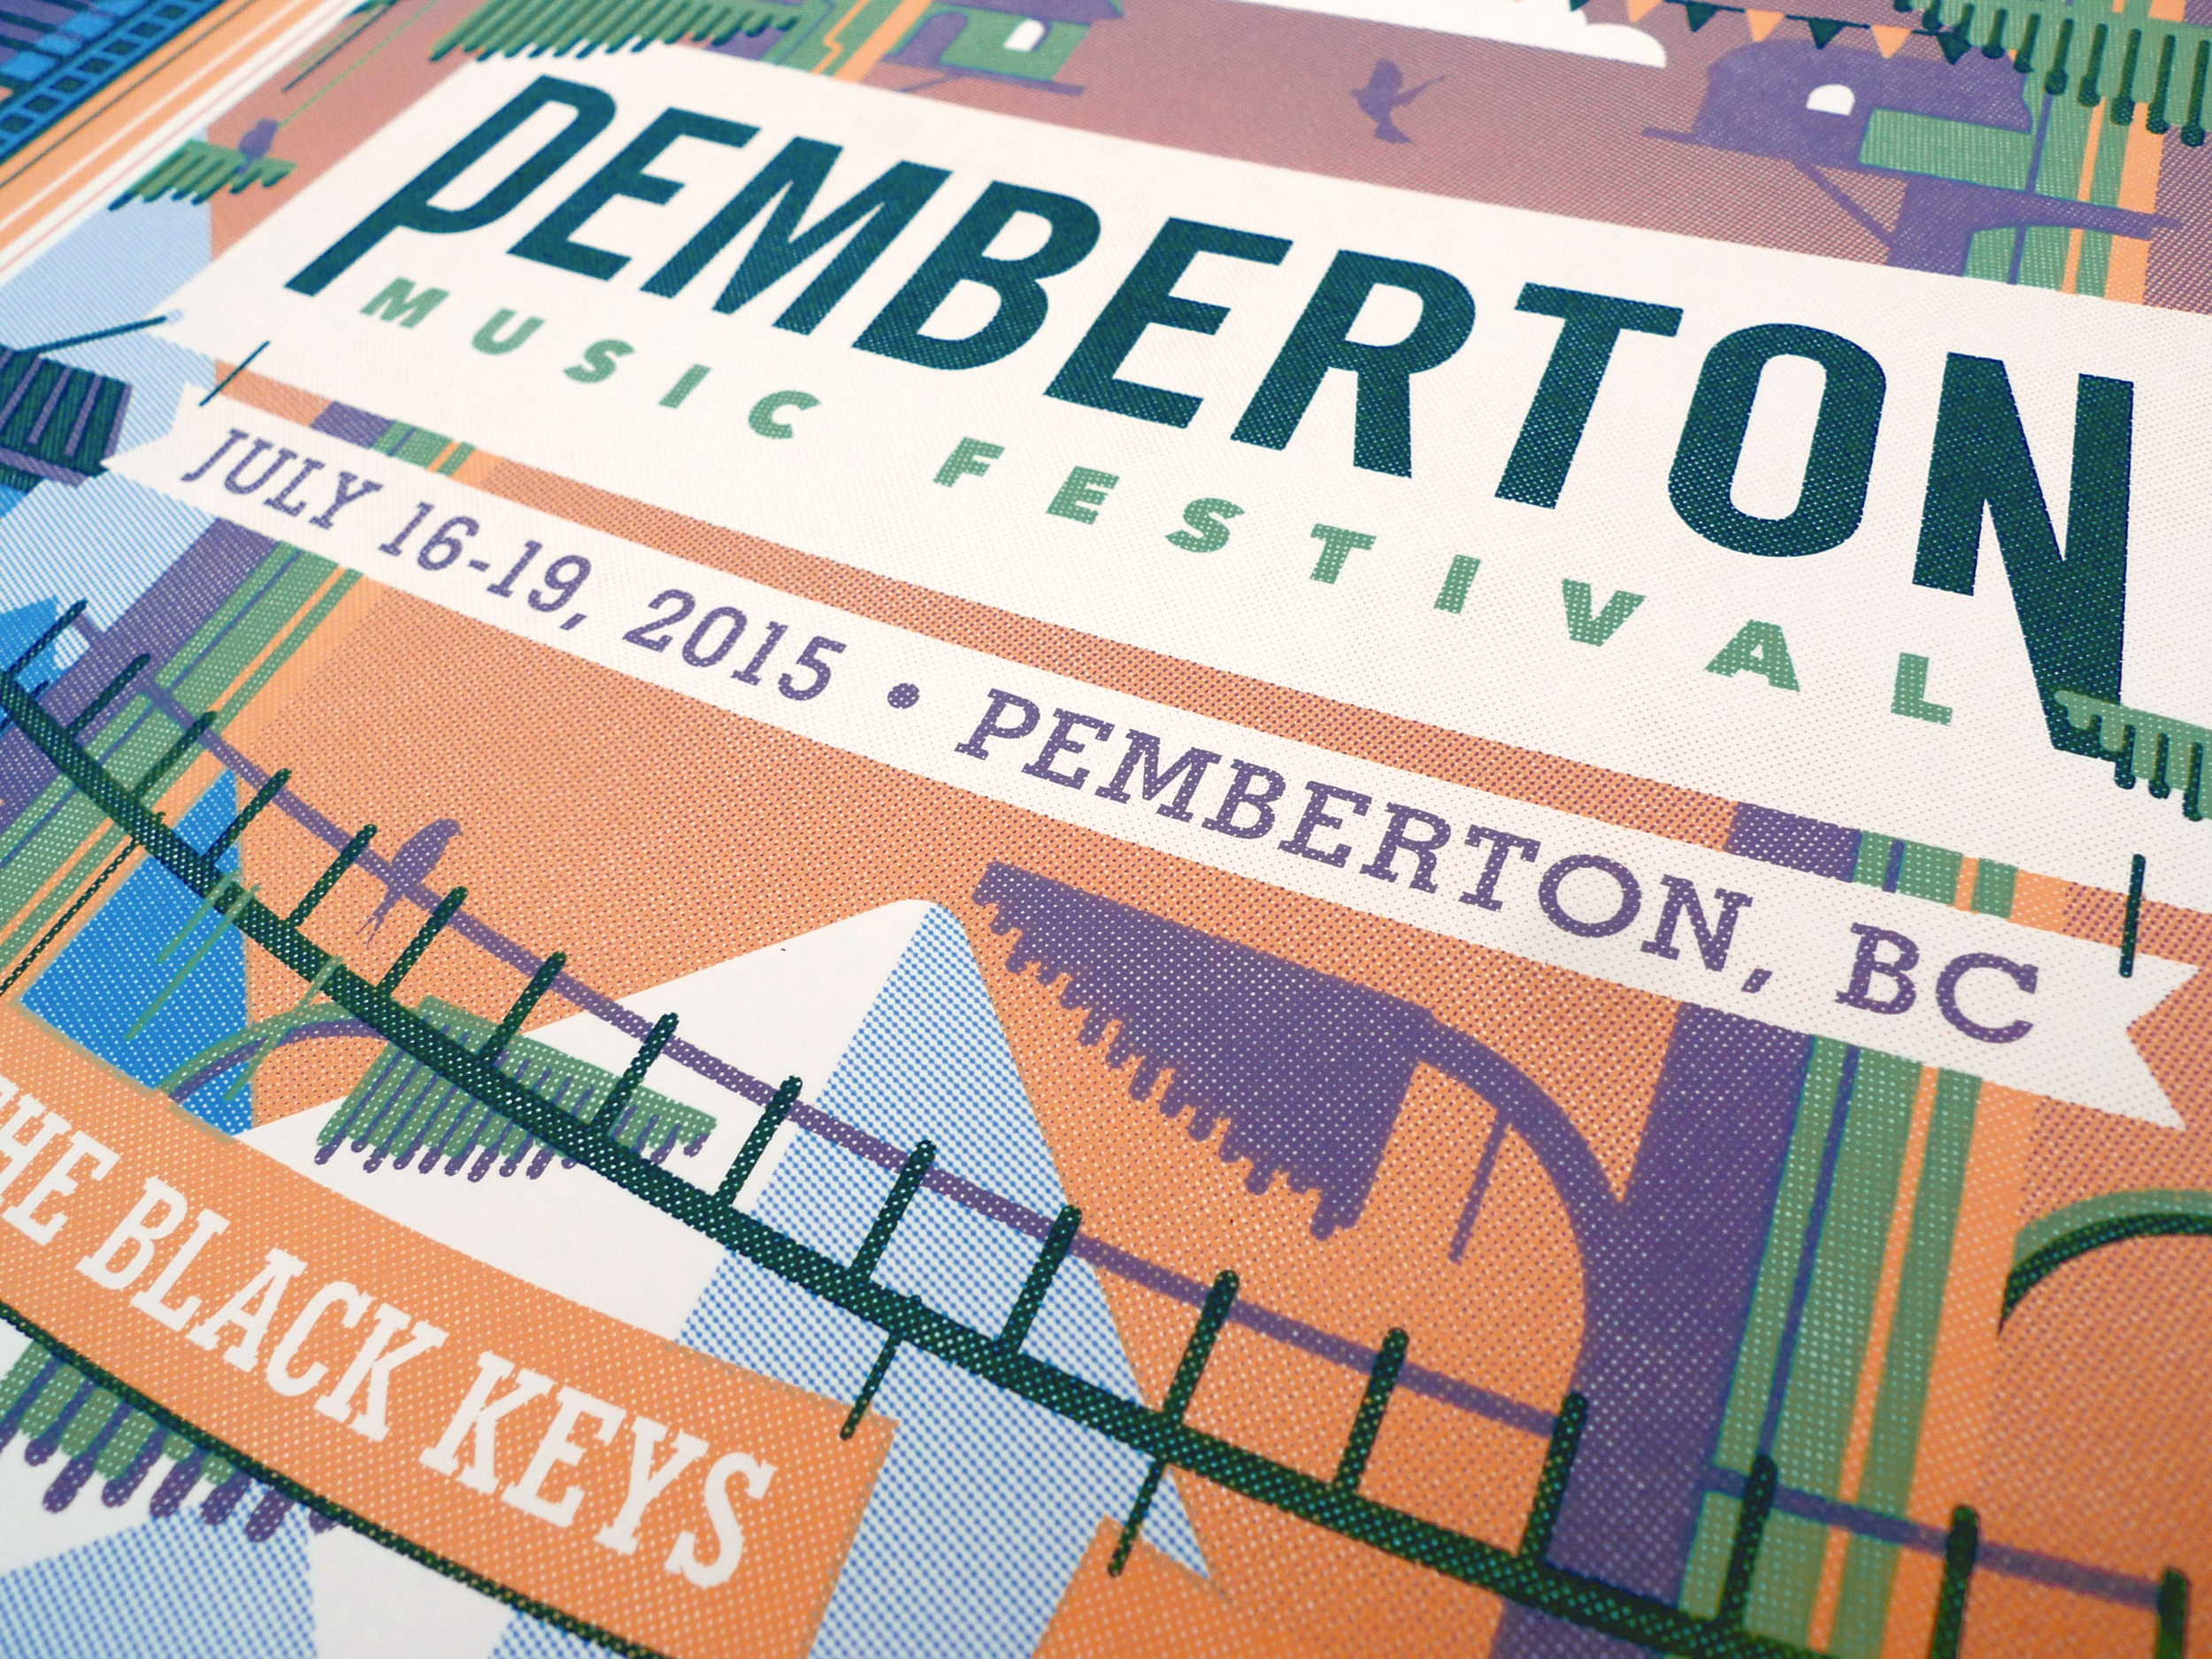 Pemberton Music Festival Poster by DKNG